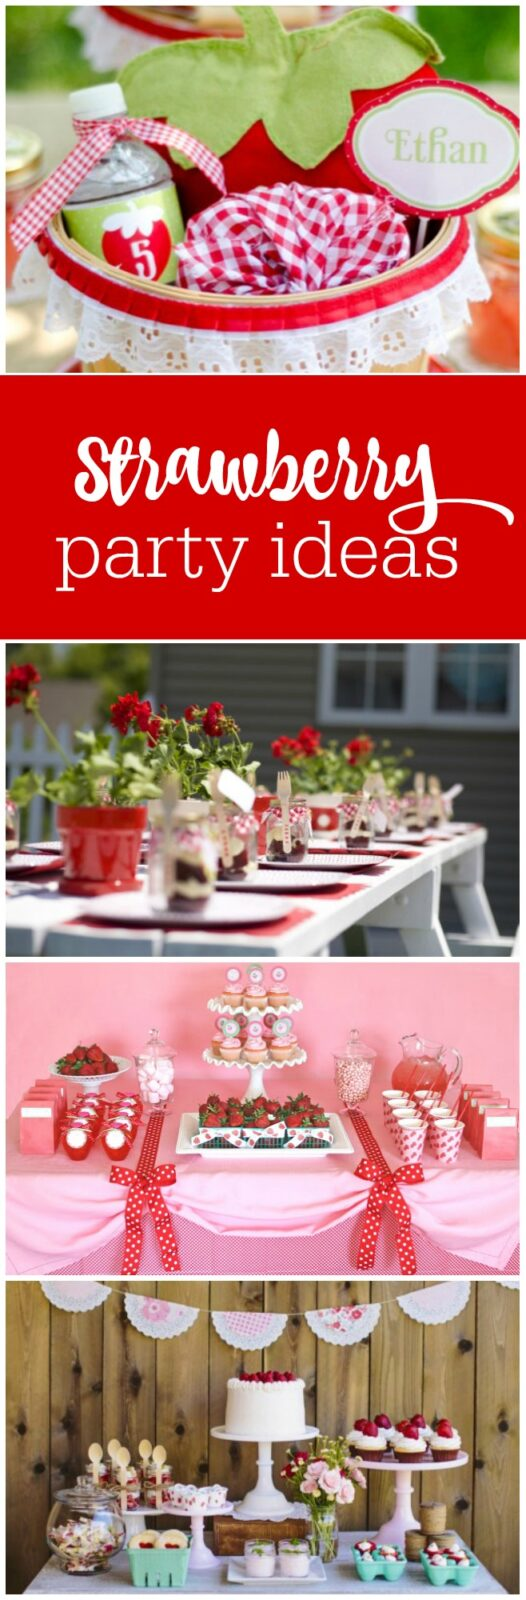 Such a cute collection of strawberry party ideas curated by The Party Teacher